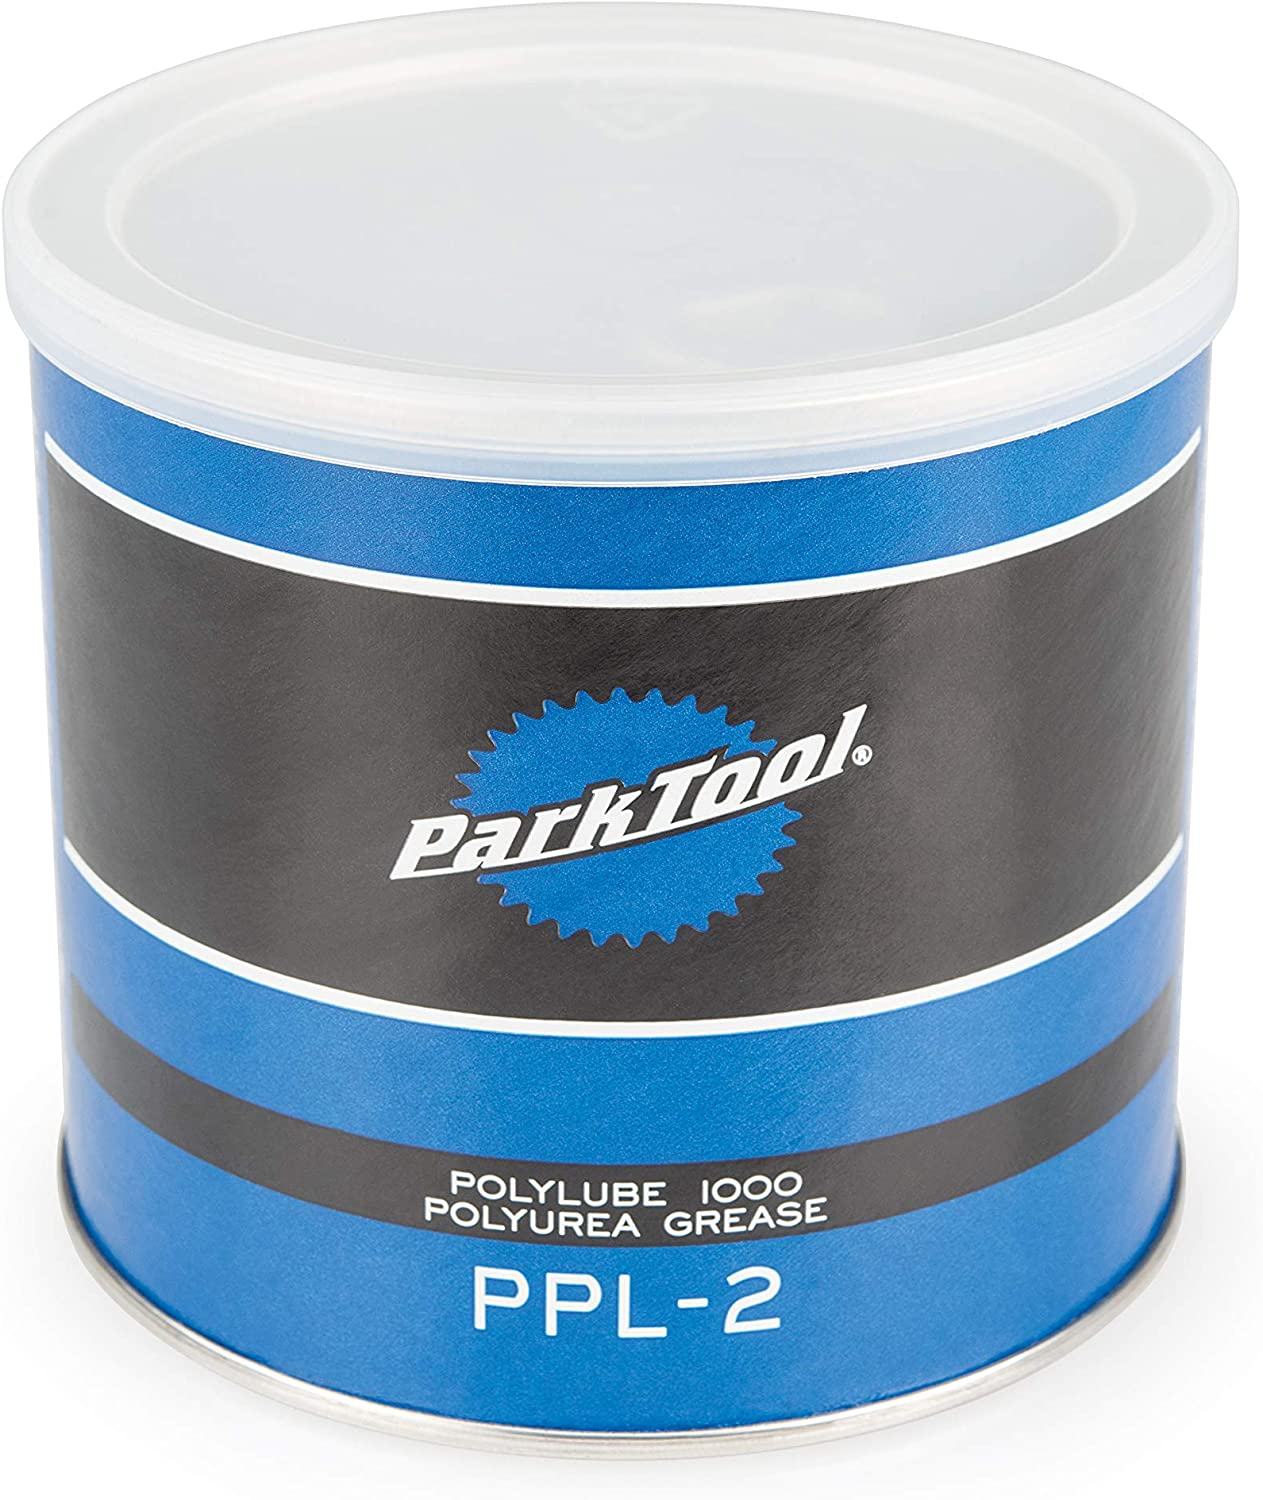 Park Tool PolyLube Grease 1000 Bicycle Superlatite OFFicial mail order